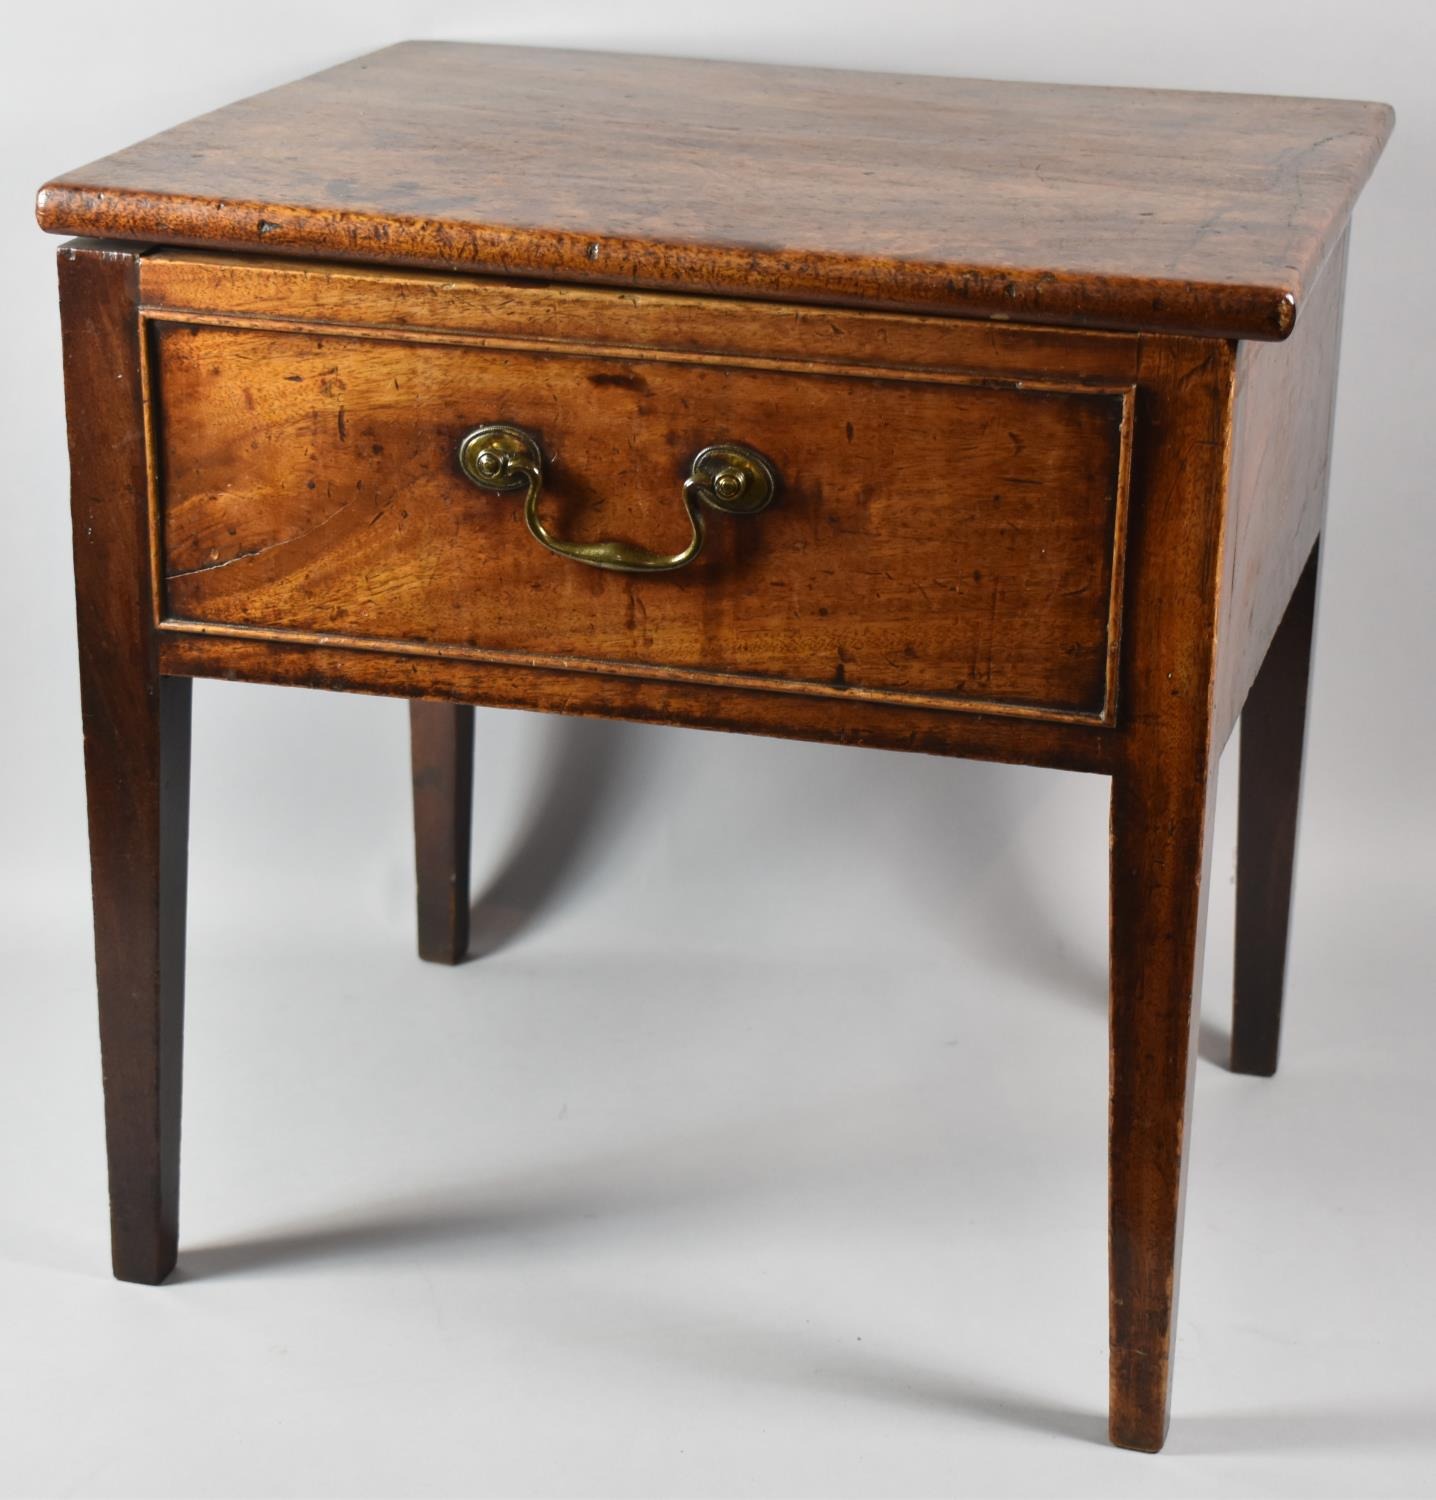 A Mid 19th Century Oak Box Commode with Hinged Top, Missing Liner, 48cm wide